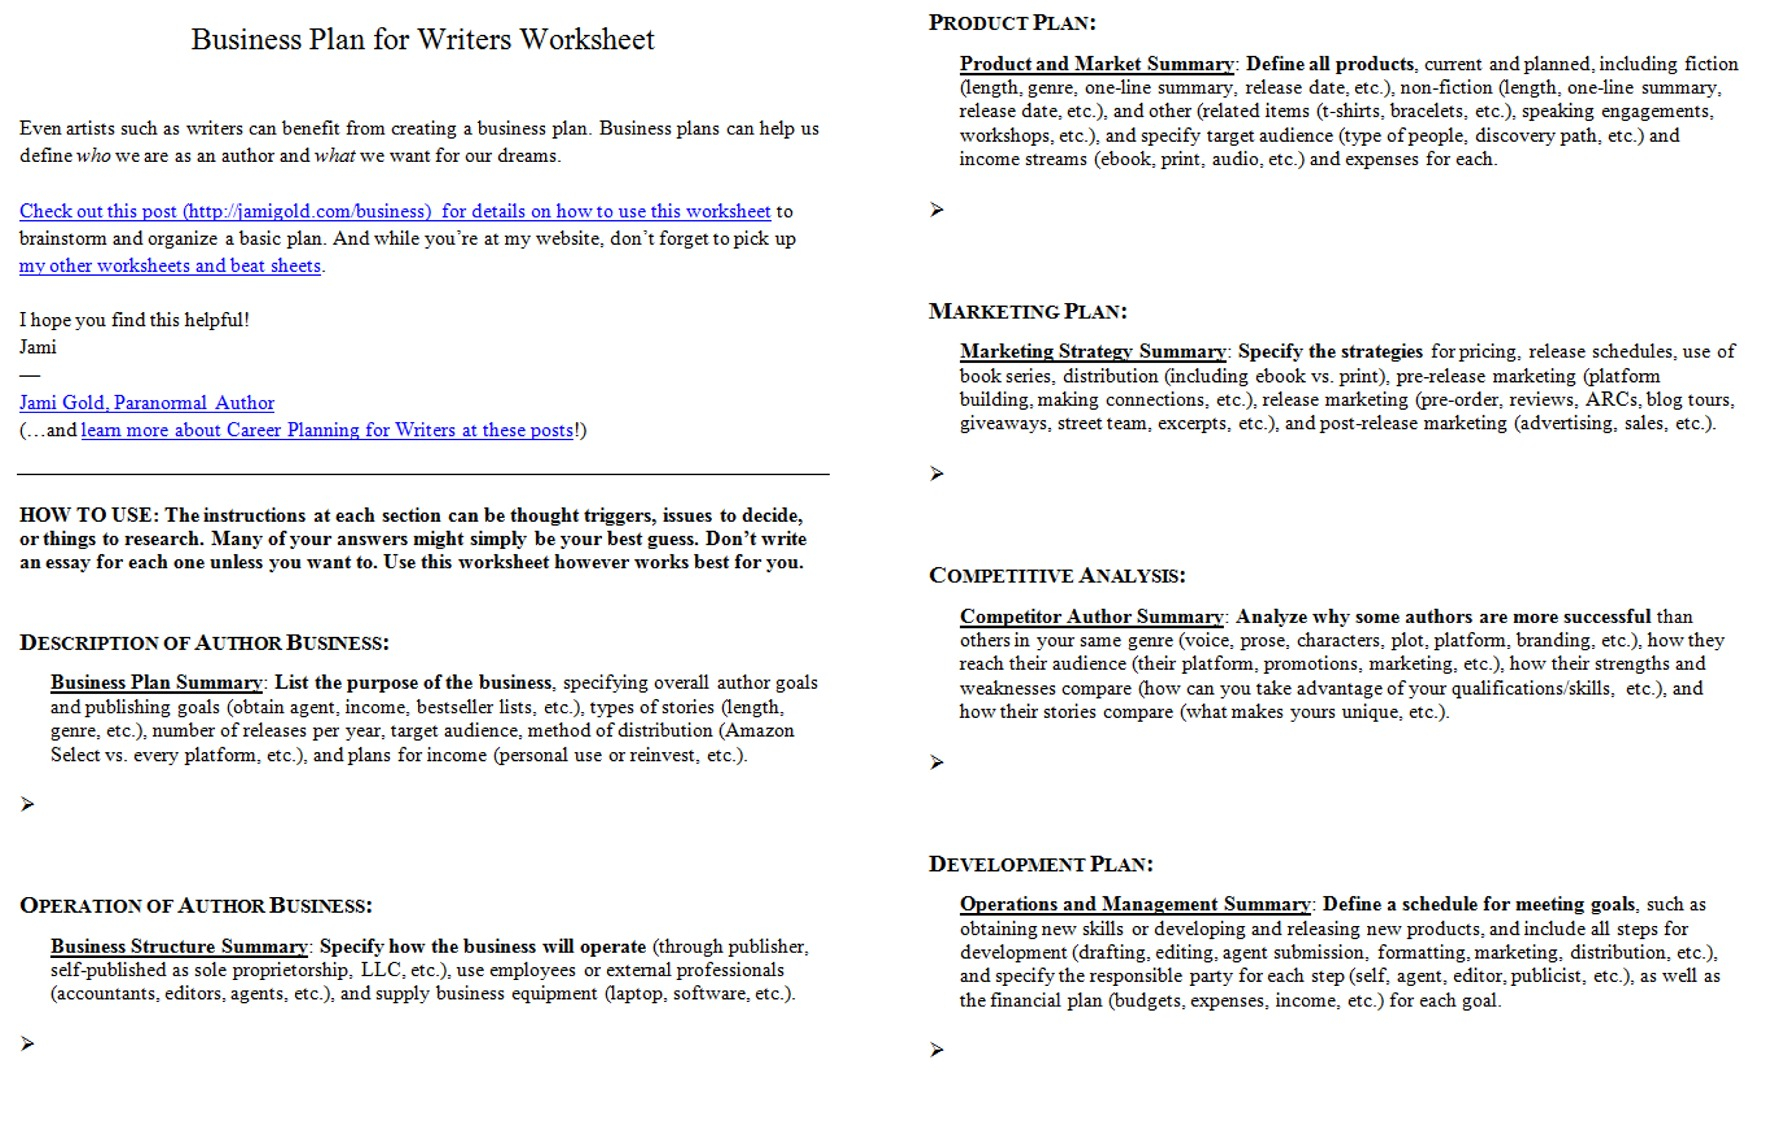 Weirdmailus  Seductive Worksheets For Writers  Jami Gold Paranormal Author With Excellent Screen Shot Of Both Pages Of The Business Plan For Writers Worksheet With Breathtaking Worksheet On Work Also Suffixes And Prefixes Worksheet In Addition Science Worksheets For Th Grade And More And Less Worksheets For Preschool As Well As Preschool Coloring Worksheets Free Printables Additionally Adjectives For Grade  Worksheet From Jamigoldcom With Weirdmailus  Excellent Worksheets For Writers  Jami Gold Paranormal Author With Breathtaking Screen Shot Of Both Pages Of The Business Plan For Writers Worksheet And Seductive Worksheet On Work Also Suffixes And Prefixes Worksheet In Addition Science Worksheets For Th Grade From Jamigoldcom